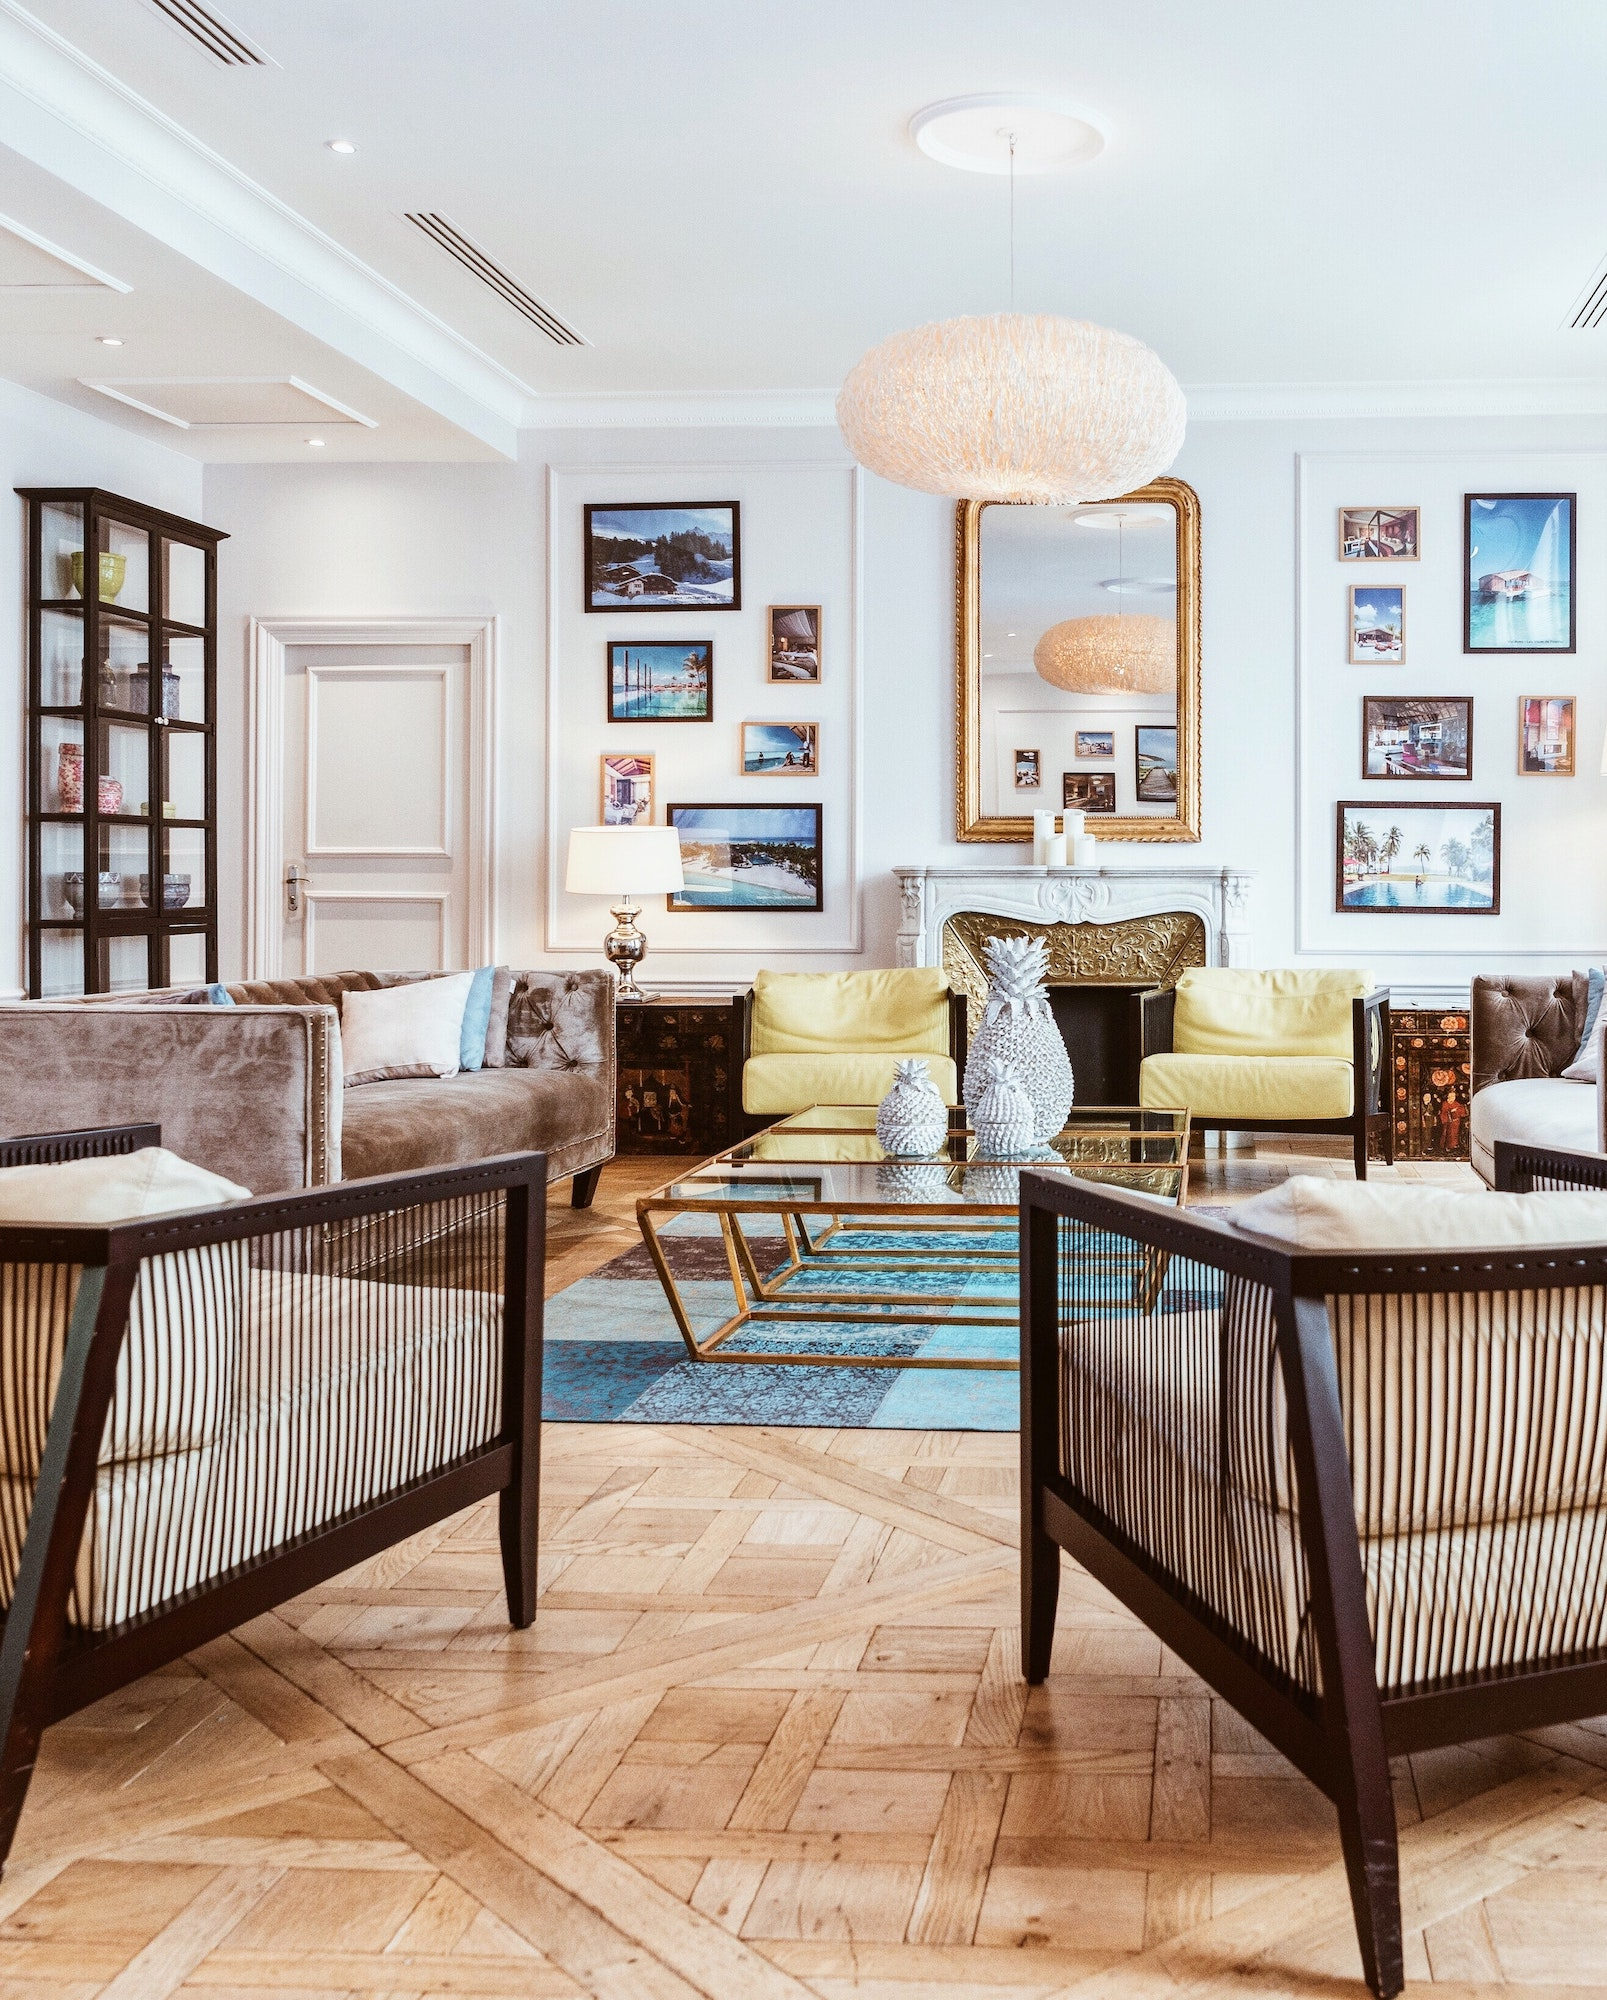 How To Be A Successful Real Estate Agent | Business Tips | Elle Blonde Luxury Lifestyle Destination Blog